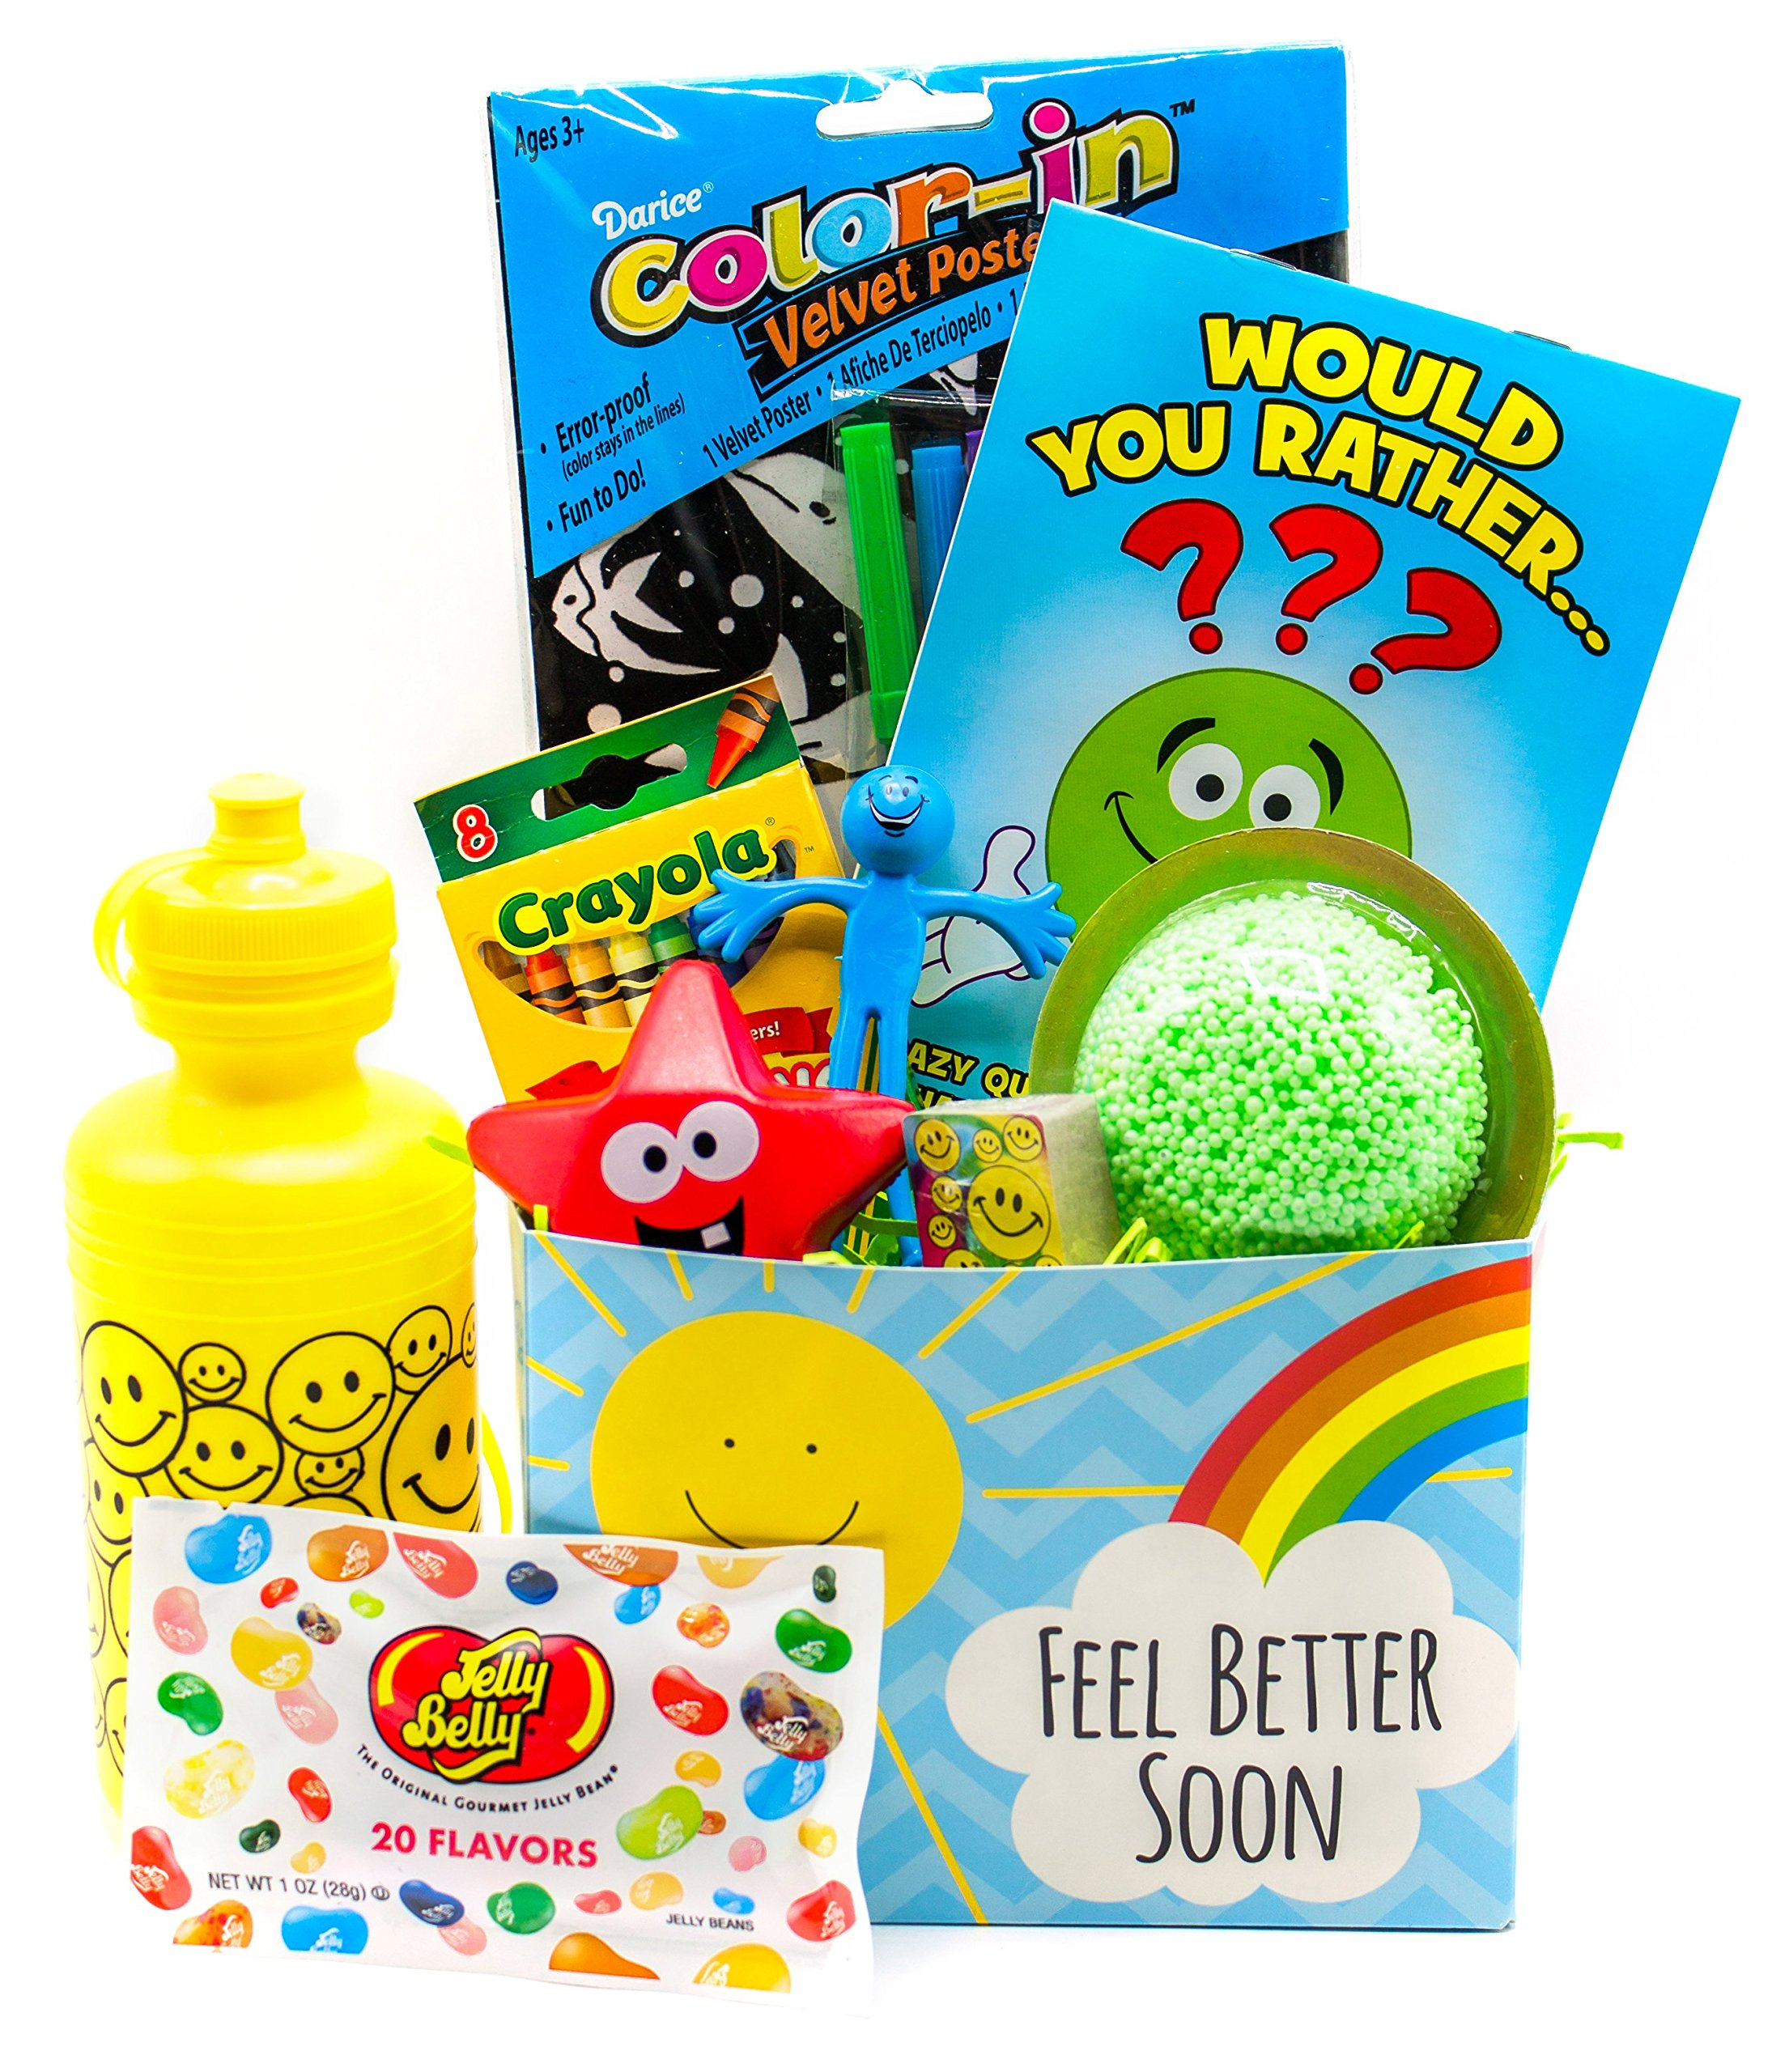 Nine at Thirty-Nine Get Well Gift Basket for Kids with Toys, Activities and Candy   Just Right for Children Who Are Sick or Recovering   Boys or Girls Ages 3-10   Colors May Vary (Neutral Colors)